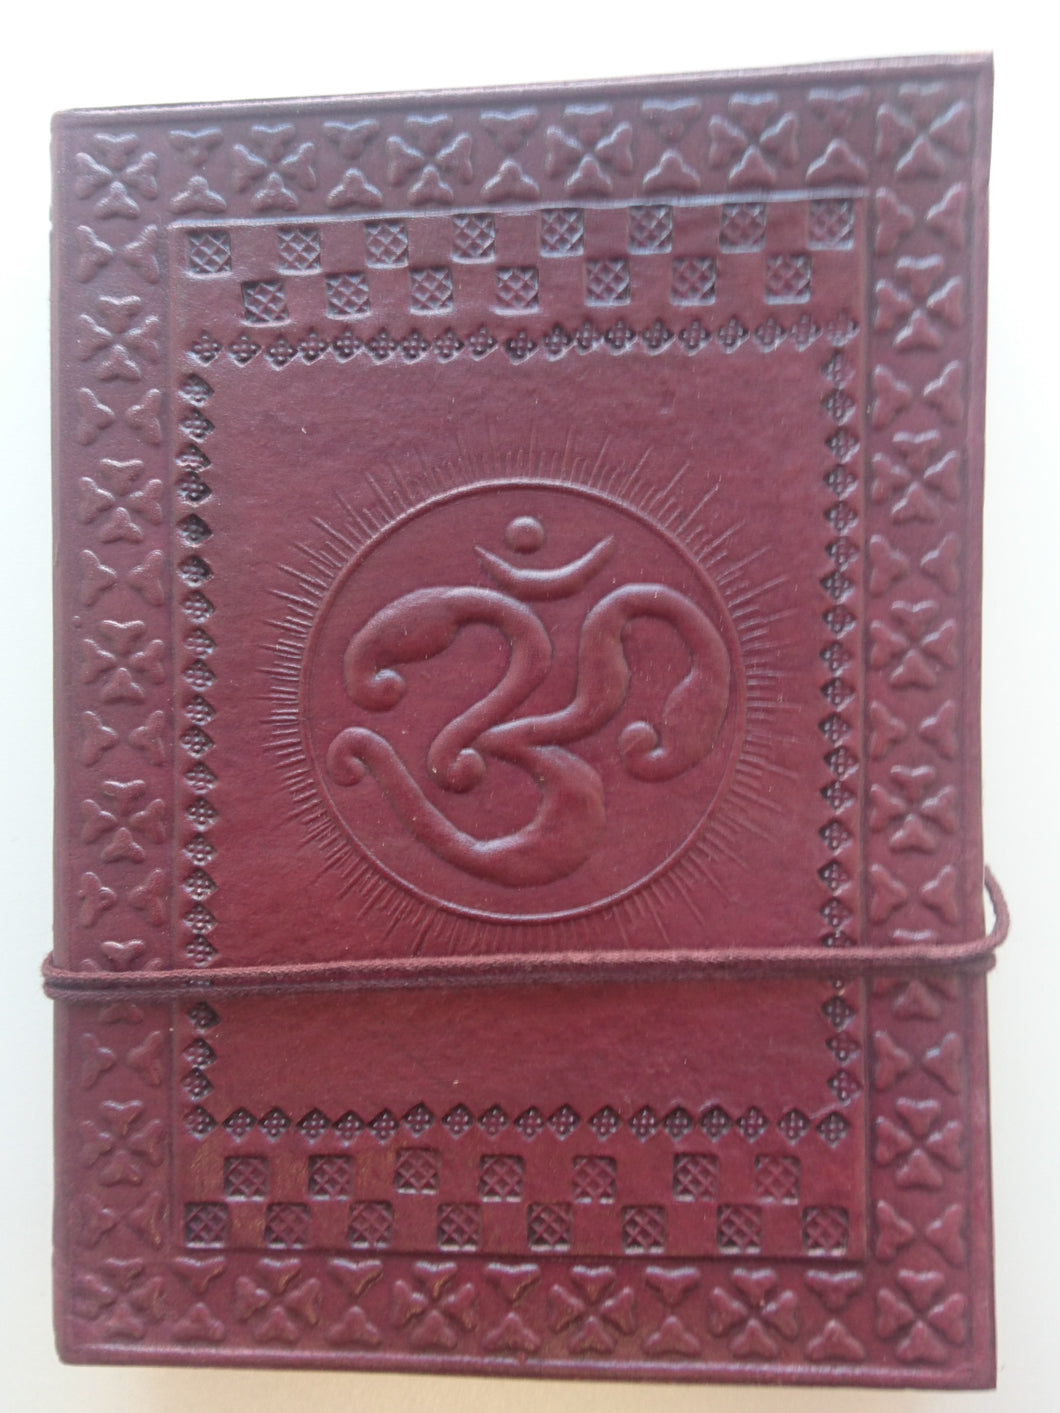 Leather Journal - Ohm